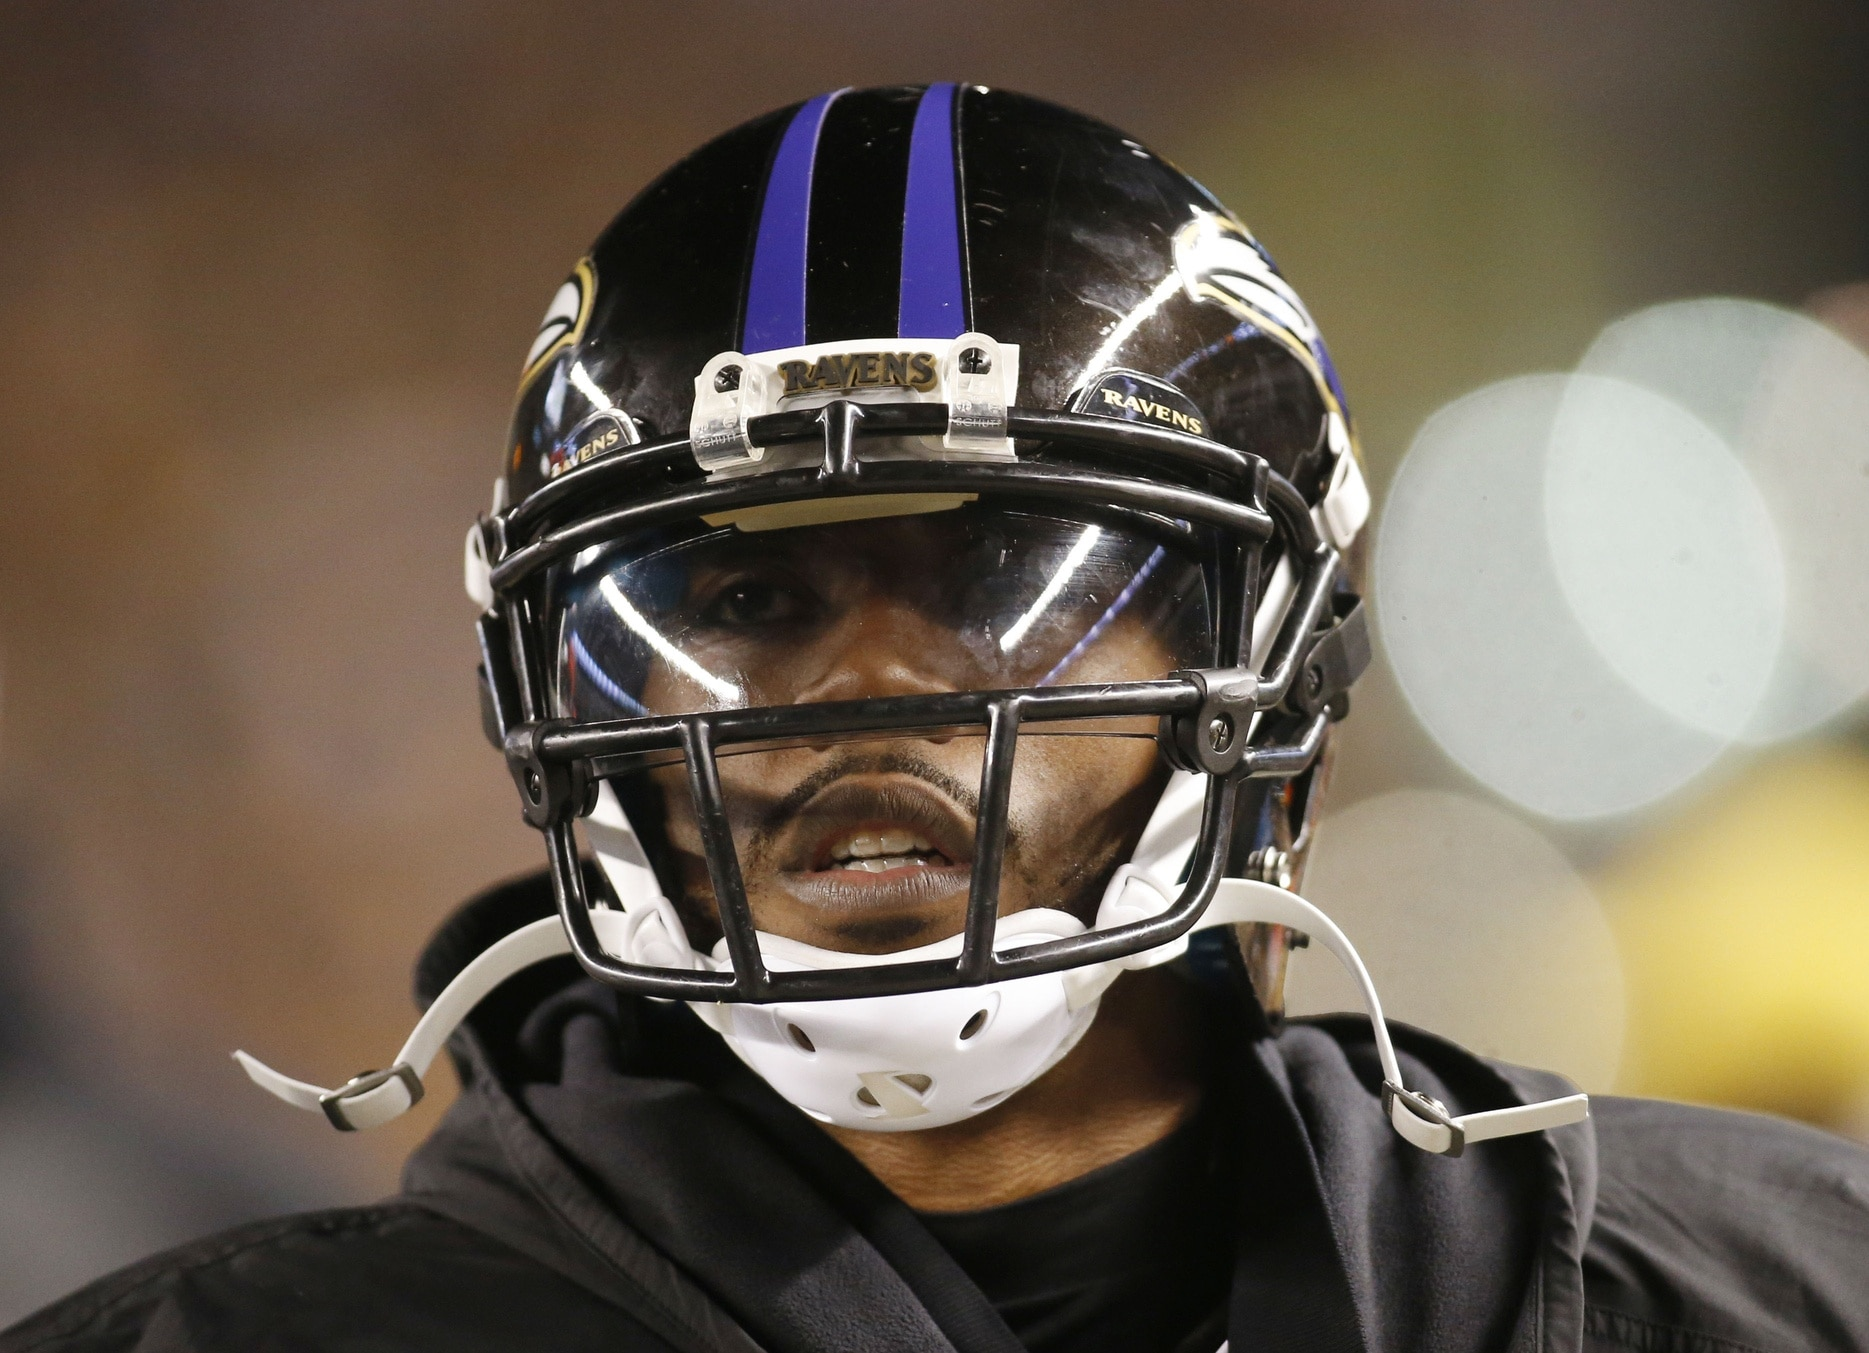 Courtesy of USA Today: Tyrod Taylor will compete for a starting gig?